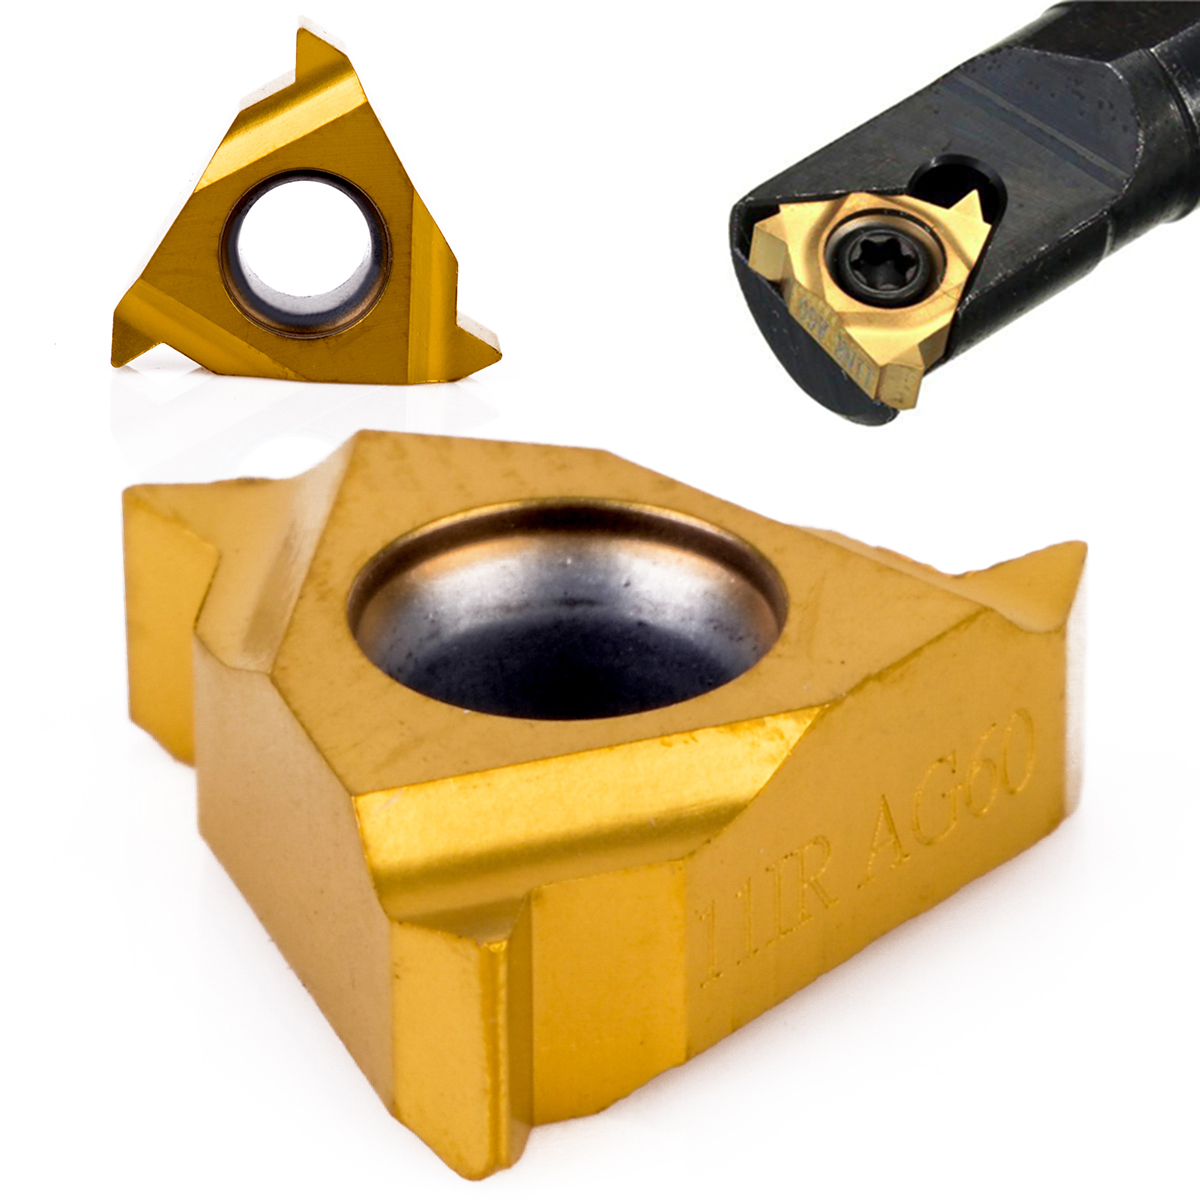 1pc 11IR AG60 Gold Carbide Insert Cemented Cutter For Lathe Threading Turing Tool Boring Bar